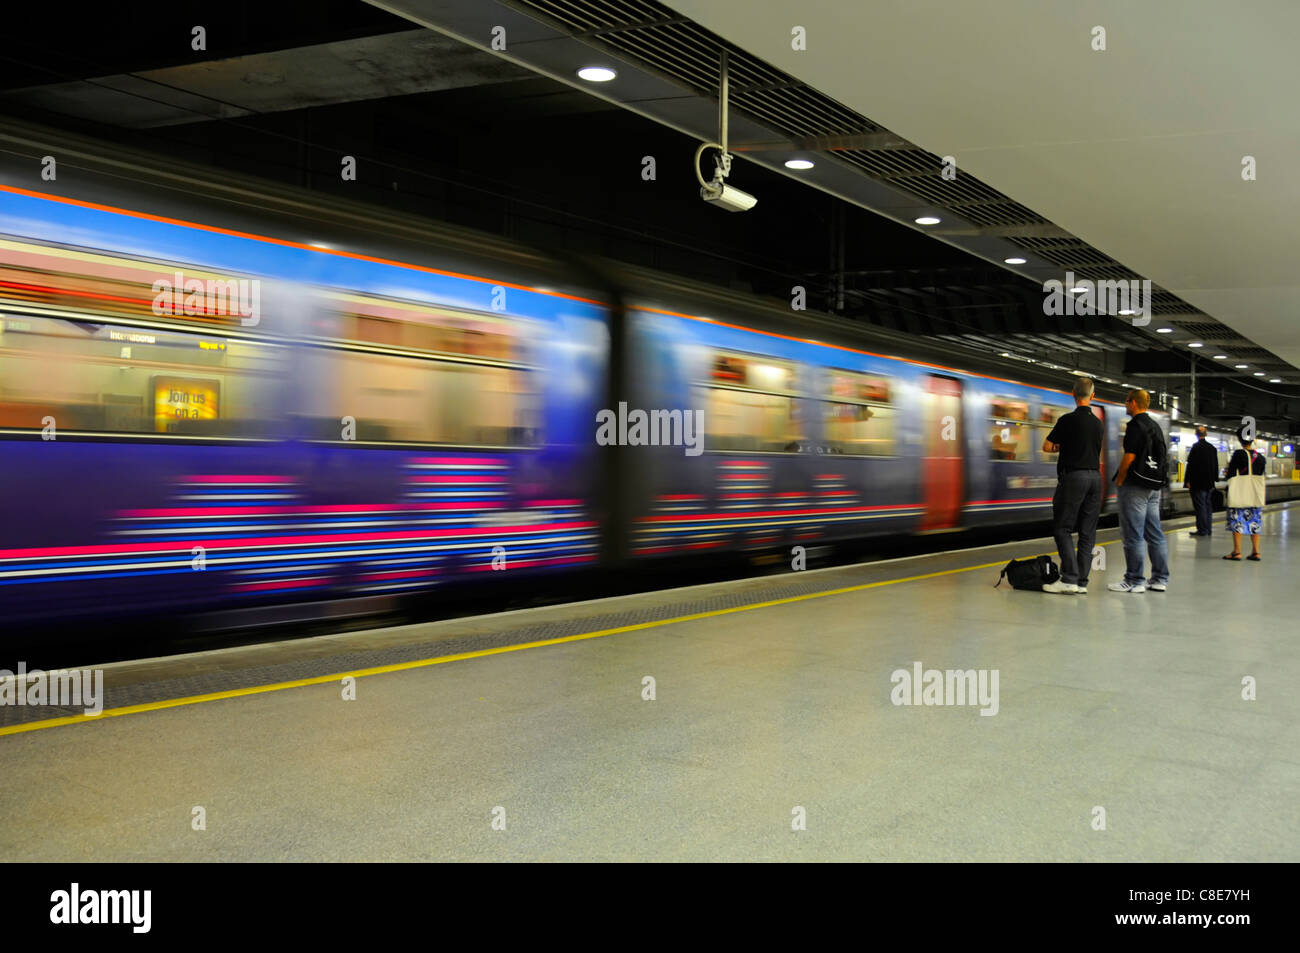 Motion blur of moving train & static passengers on platform at St Pancras International railway station for - Stock Image